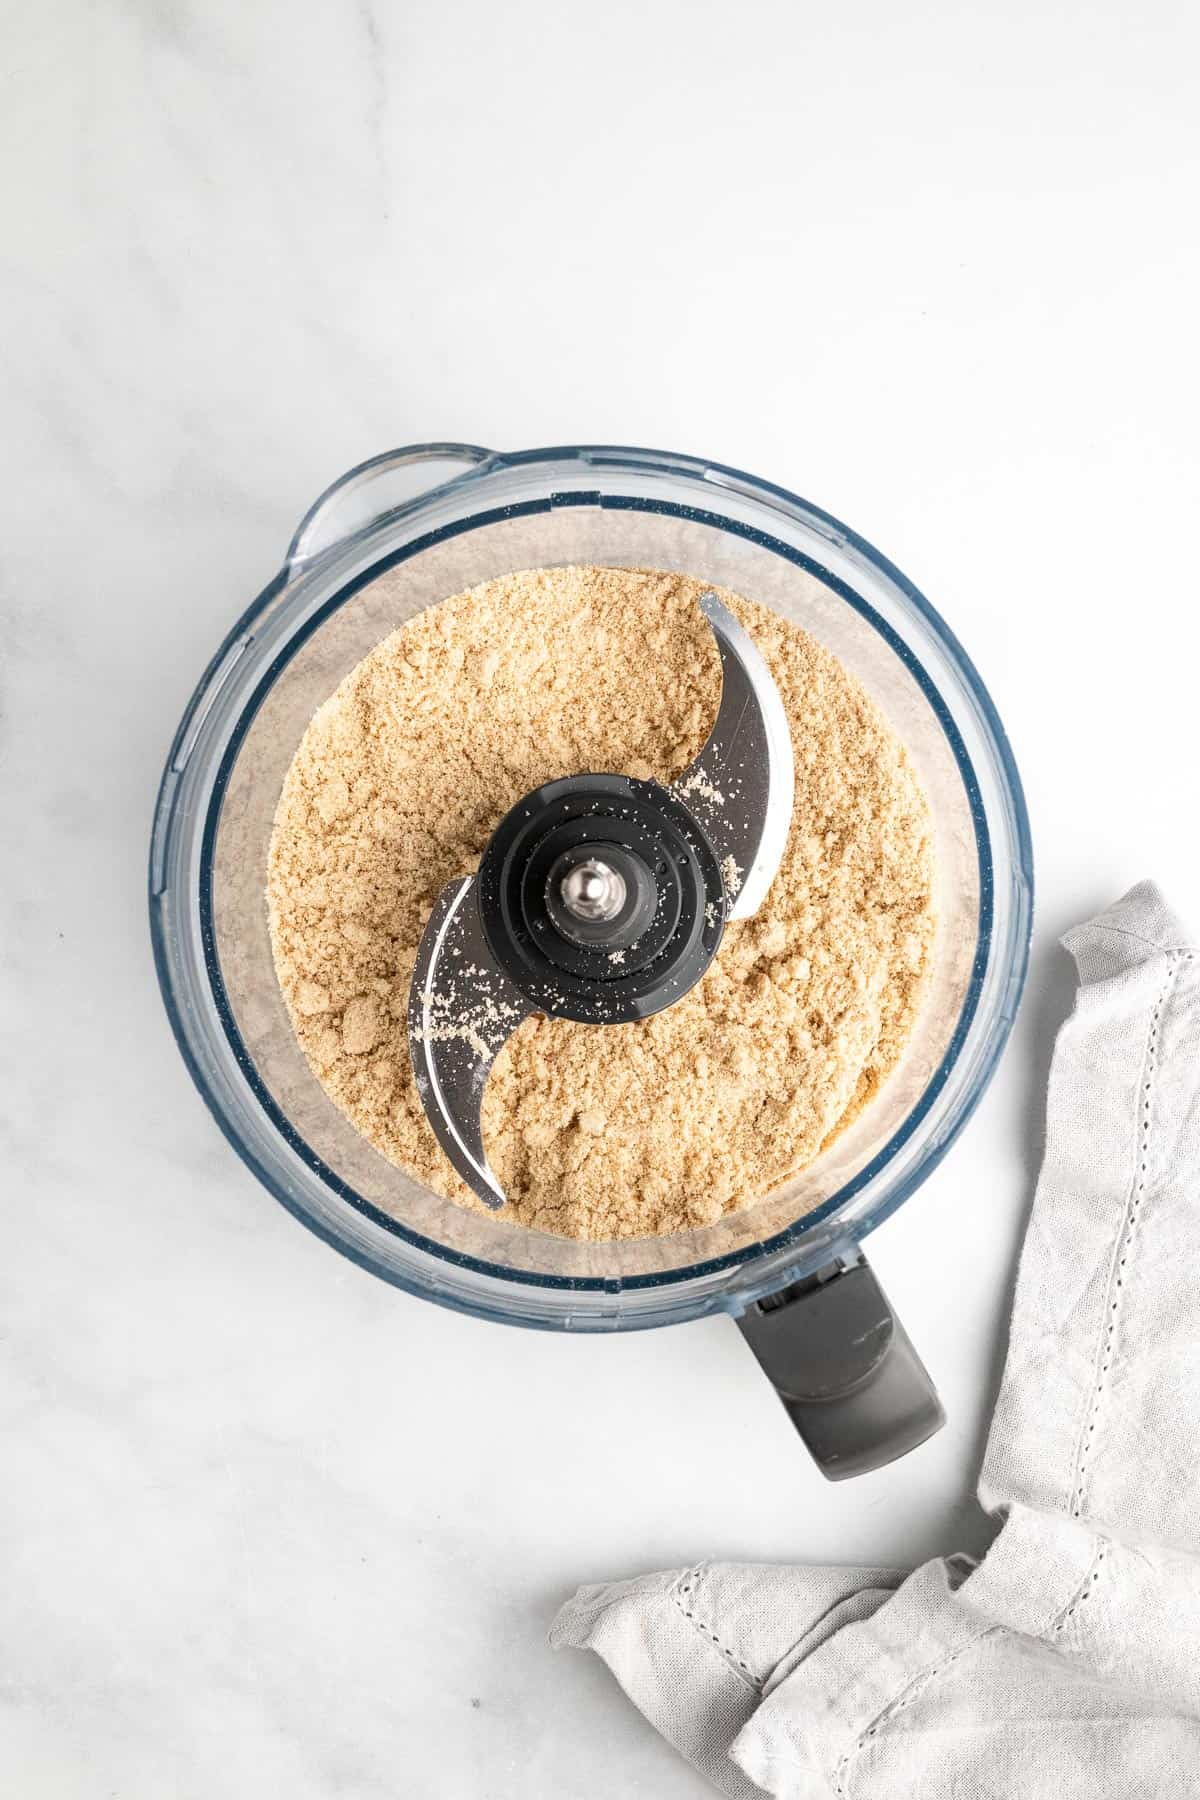 Dry ingredients in the food processor, as seen from above